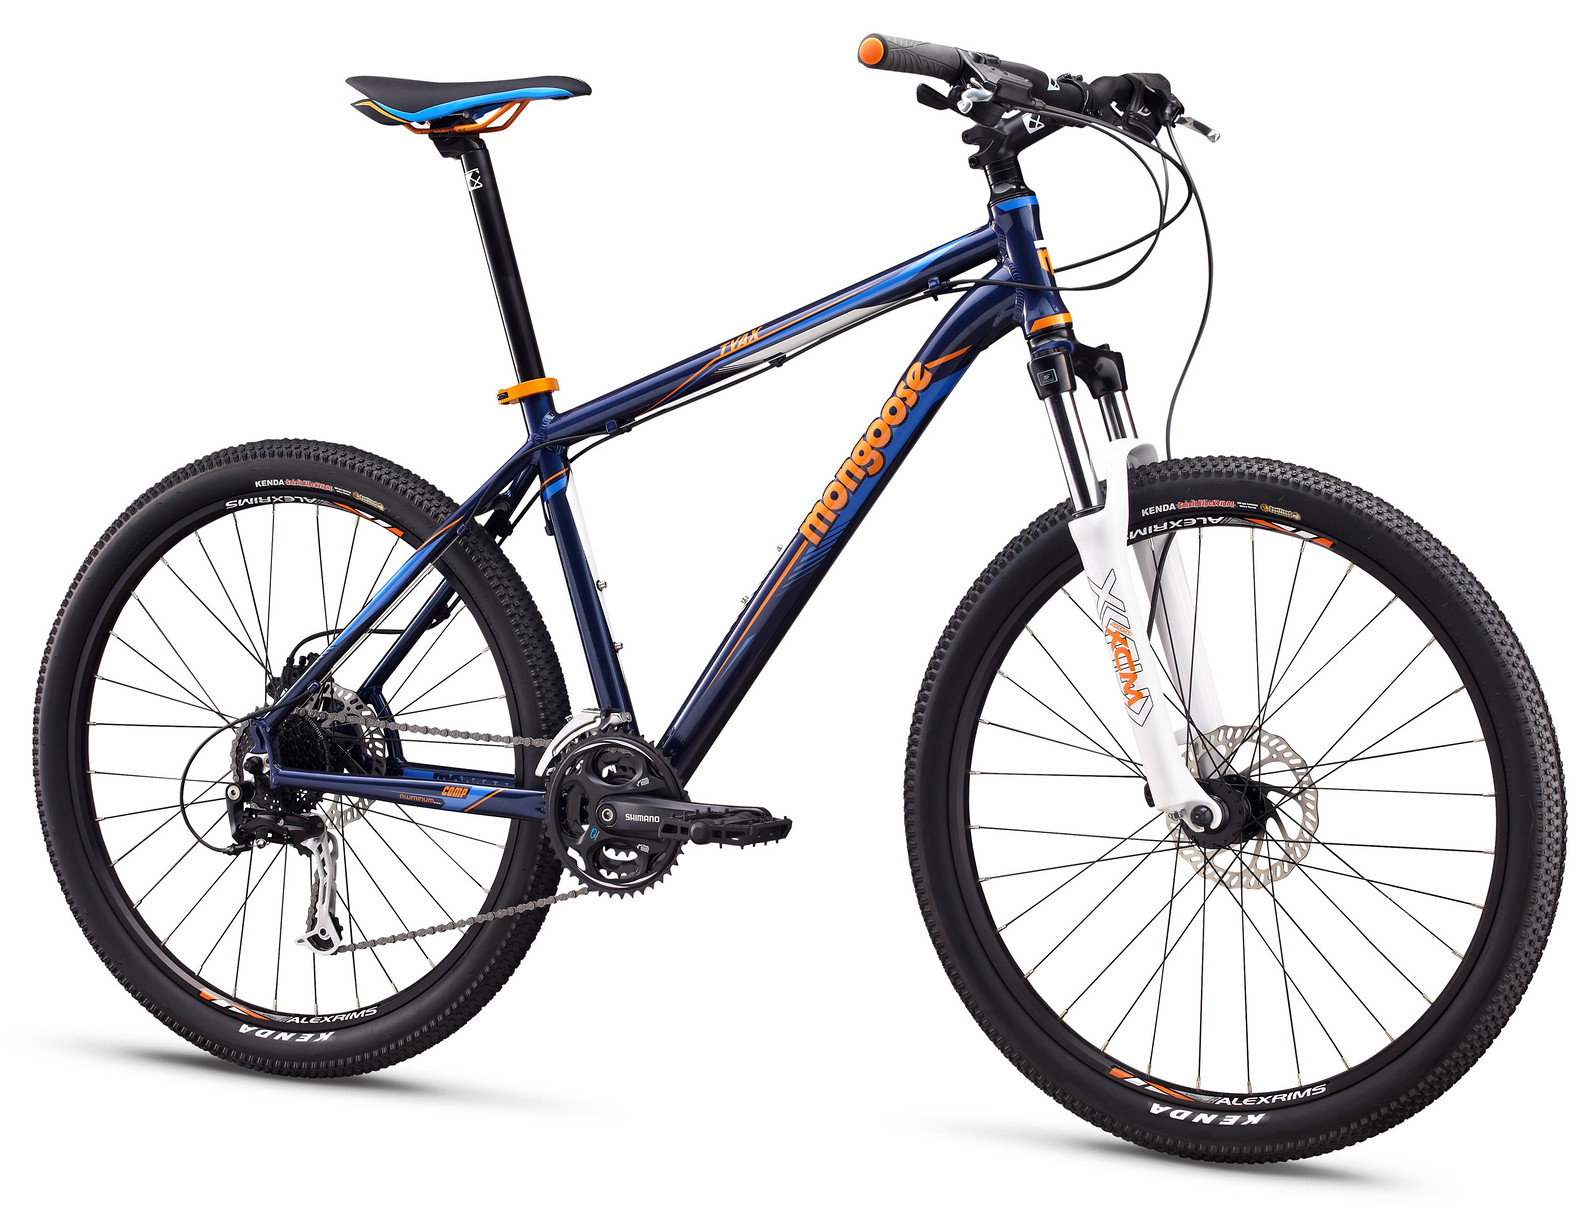 mongoose mountain bike prices - 900×682